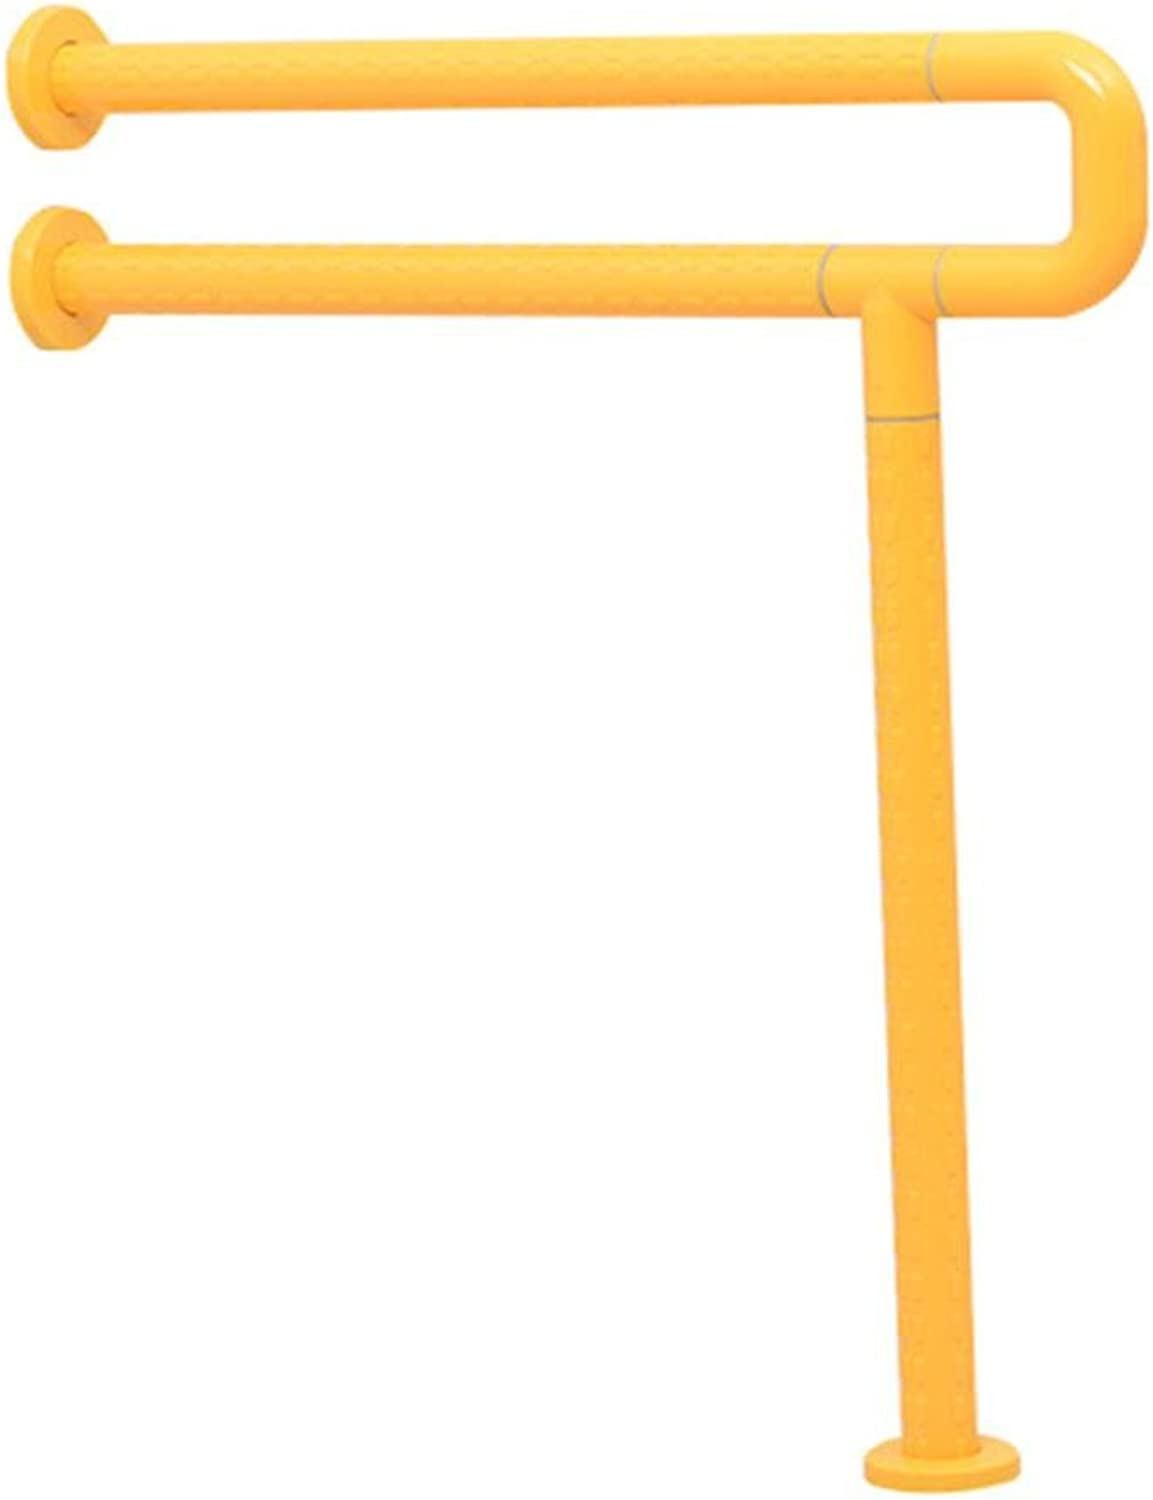 KHSKX Barrier-free handrails, toilet-bathroom handrails, the old handrail for the disabled , Yellow